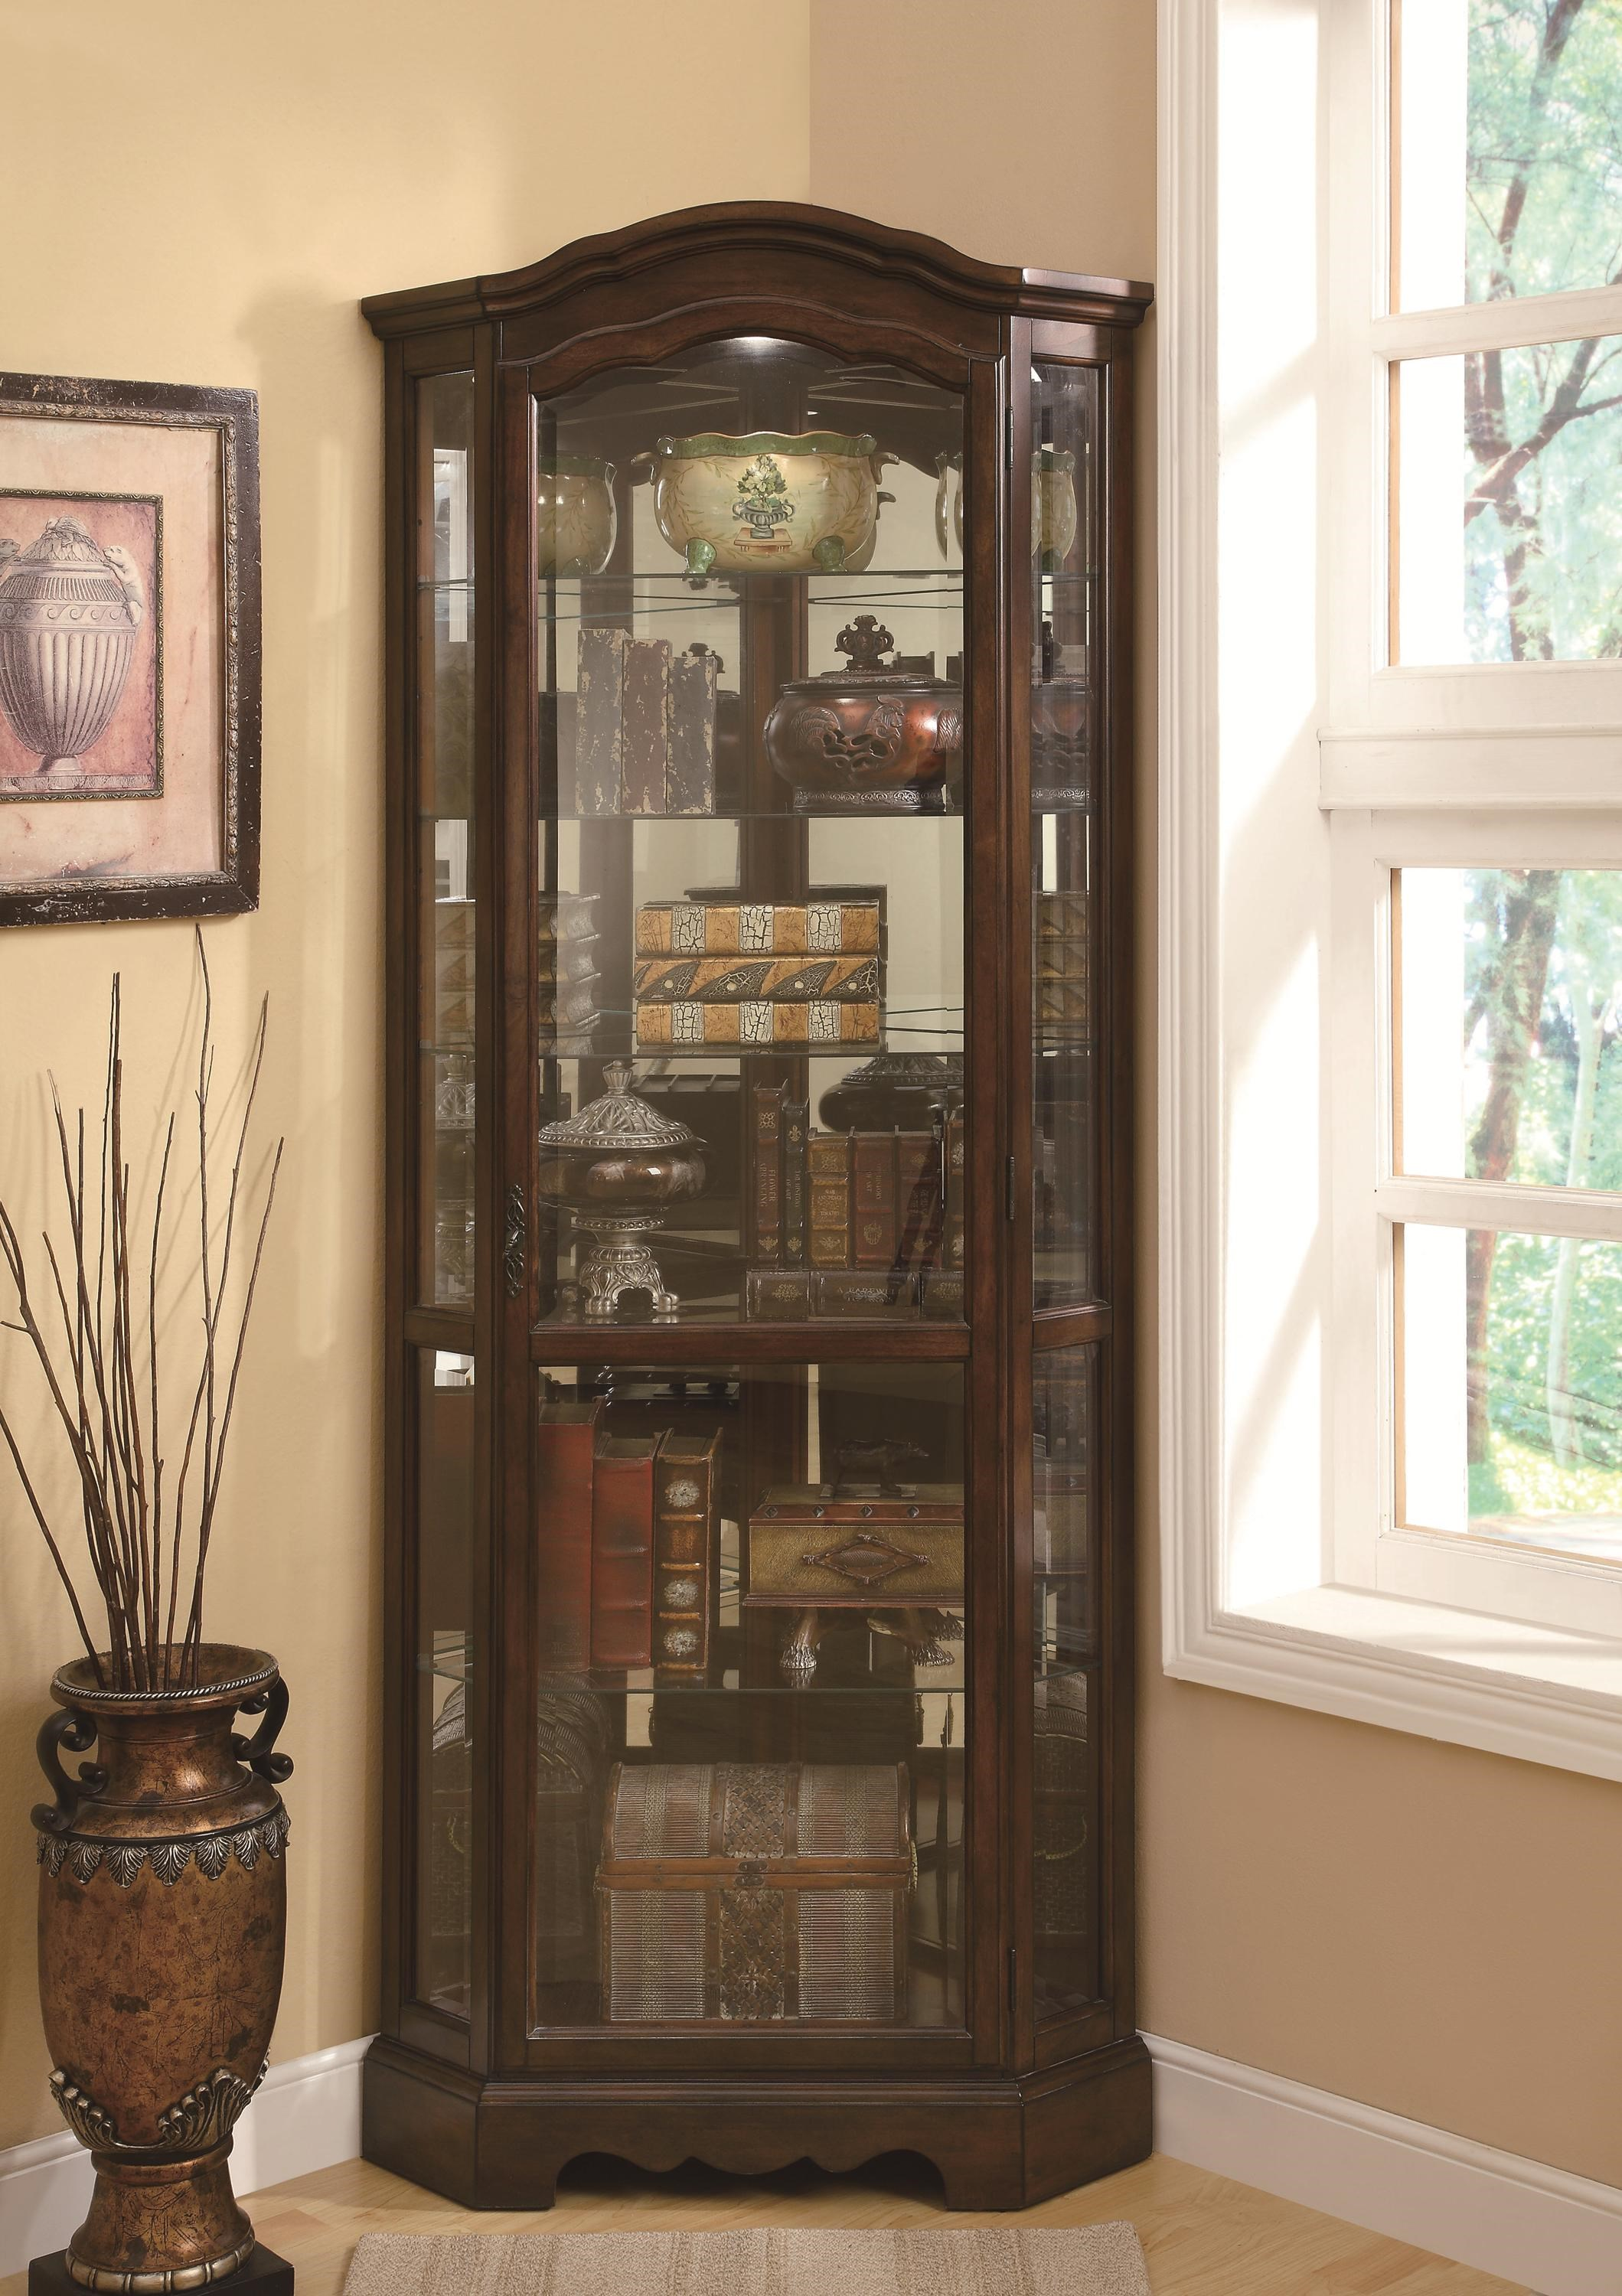 Coaster Curio Cabinets 5 Shelf Corner Curio Cabinet with Shaped ...